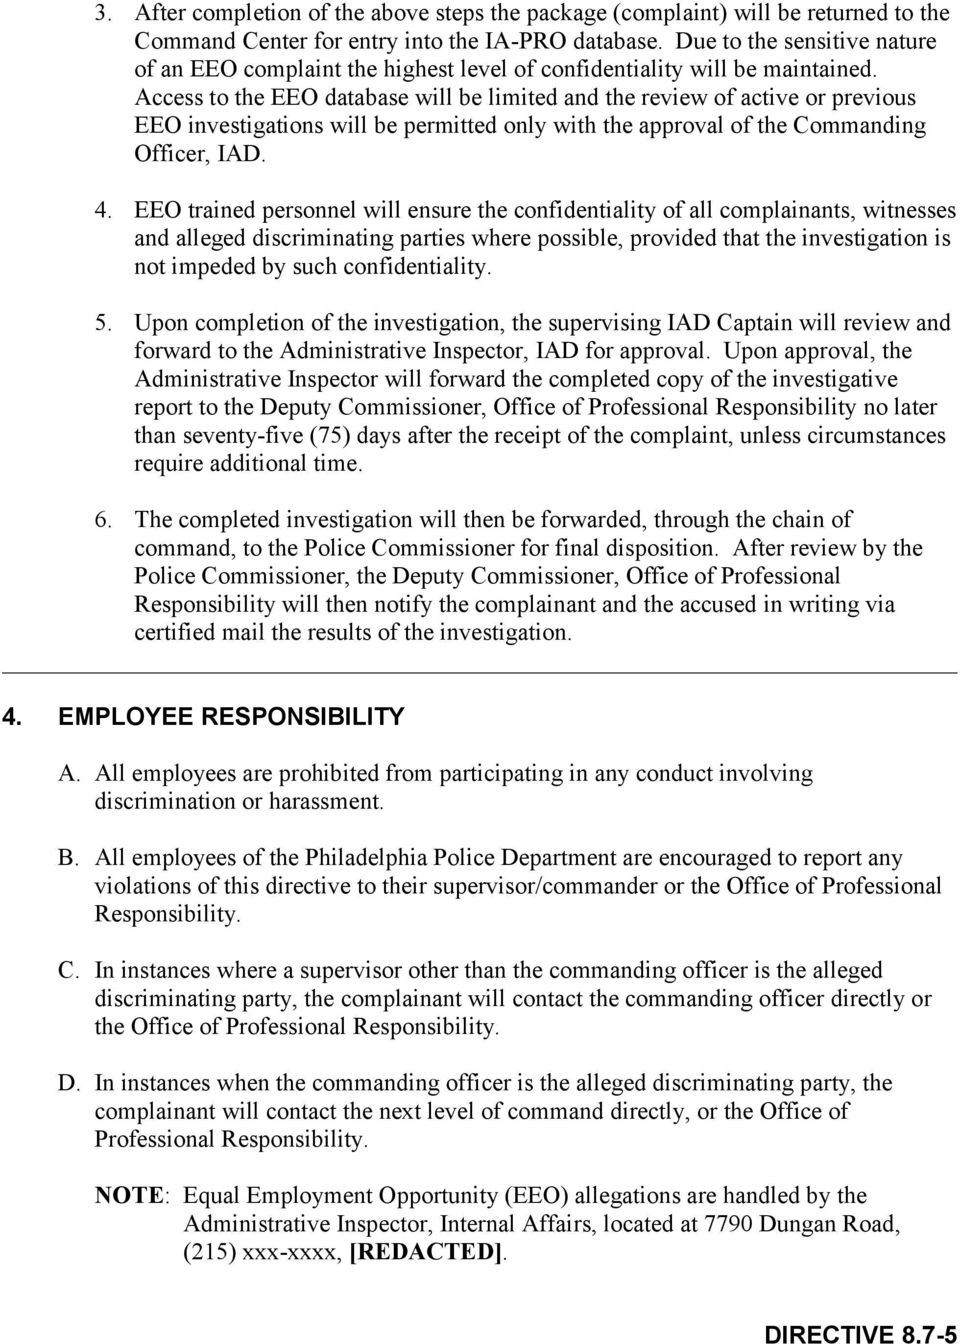 Access to the EEO database will be limited and the review of active or previous EEO investigations will be permitted only with the approval of the Commanding Officer, IAD. 4.